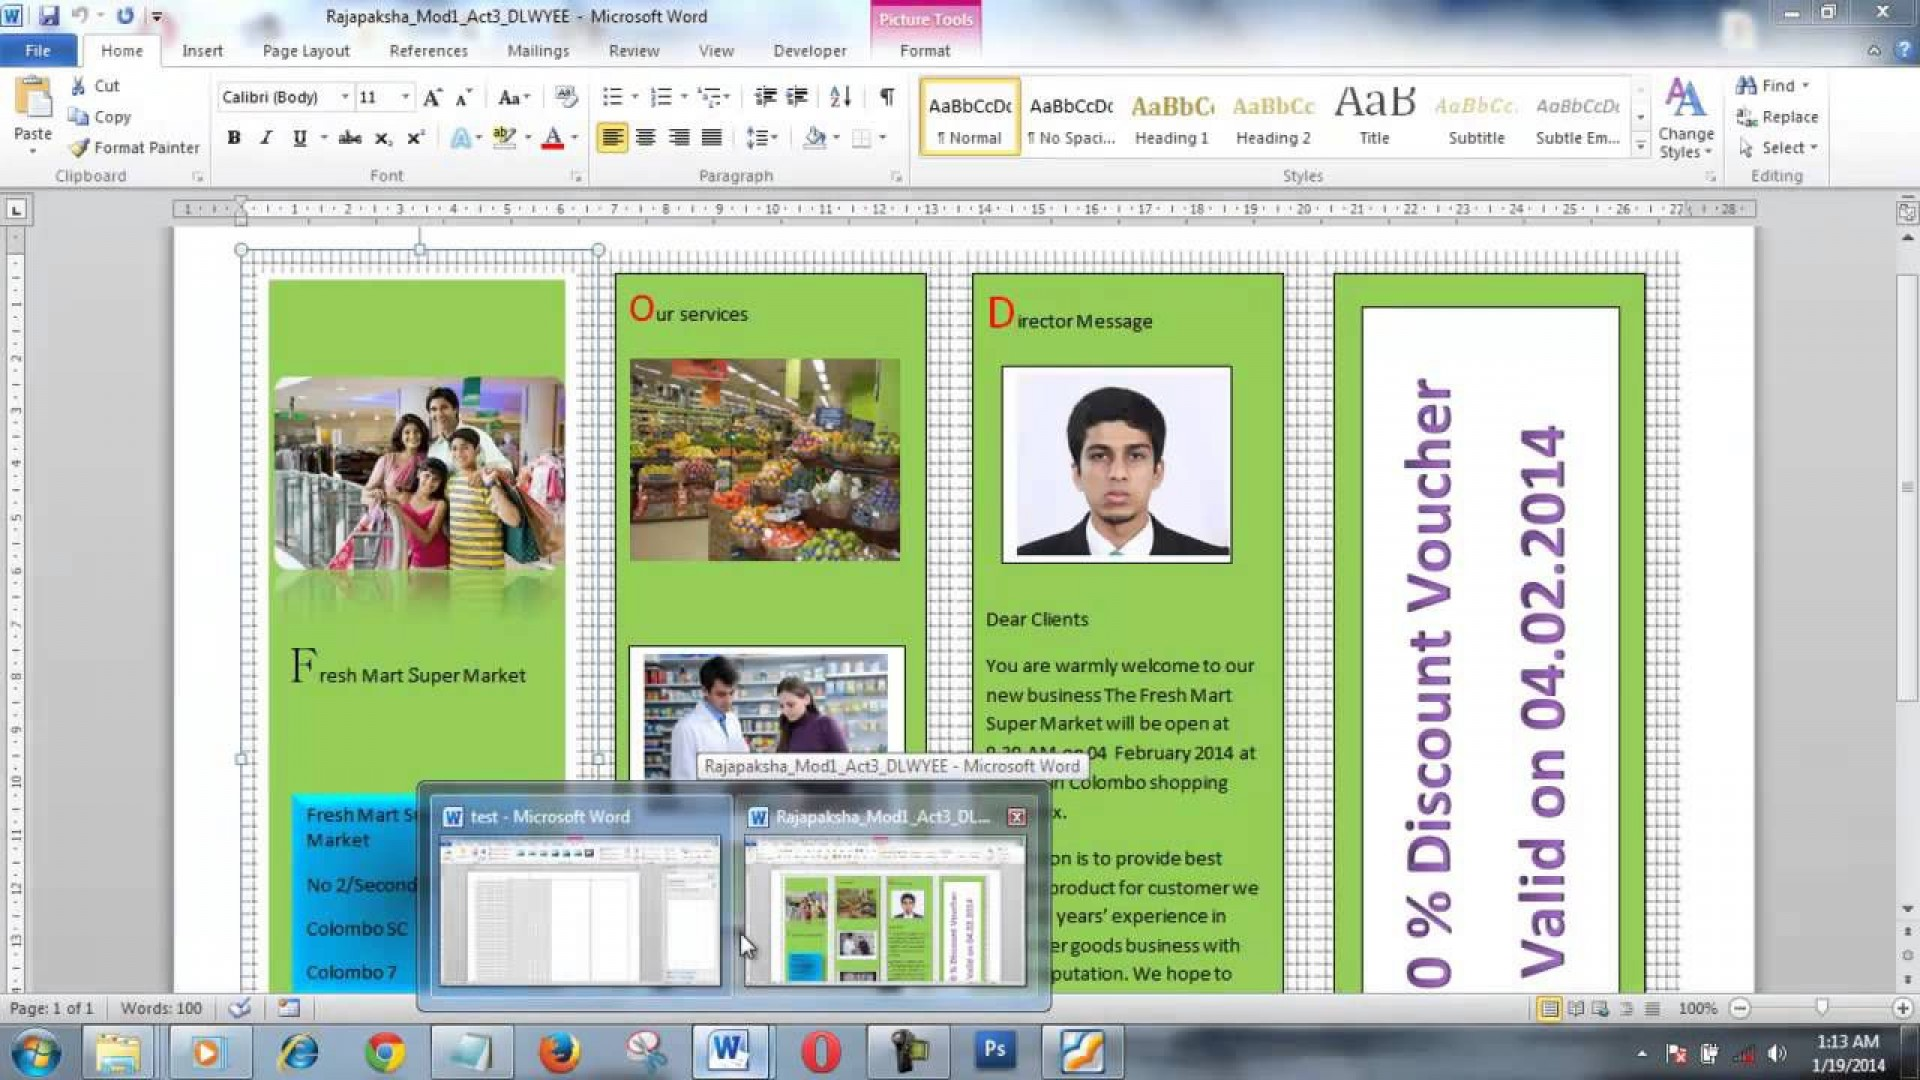 008 Staggering M Word 2007 Brochure Template Sample  Templates Microsoft Office Download For Free1920